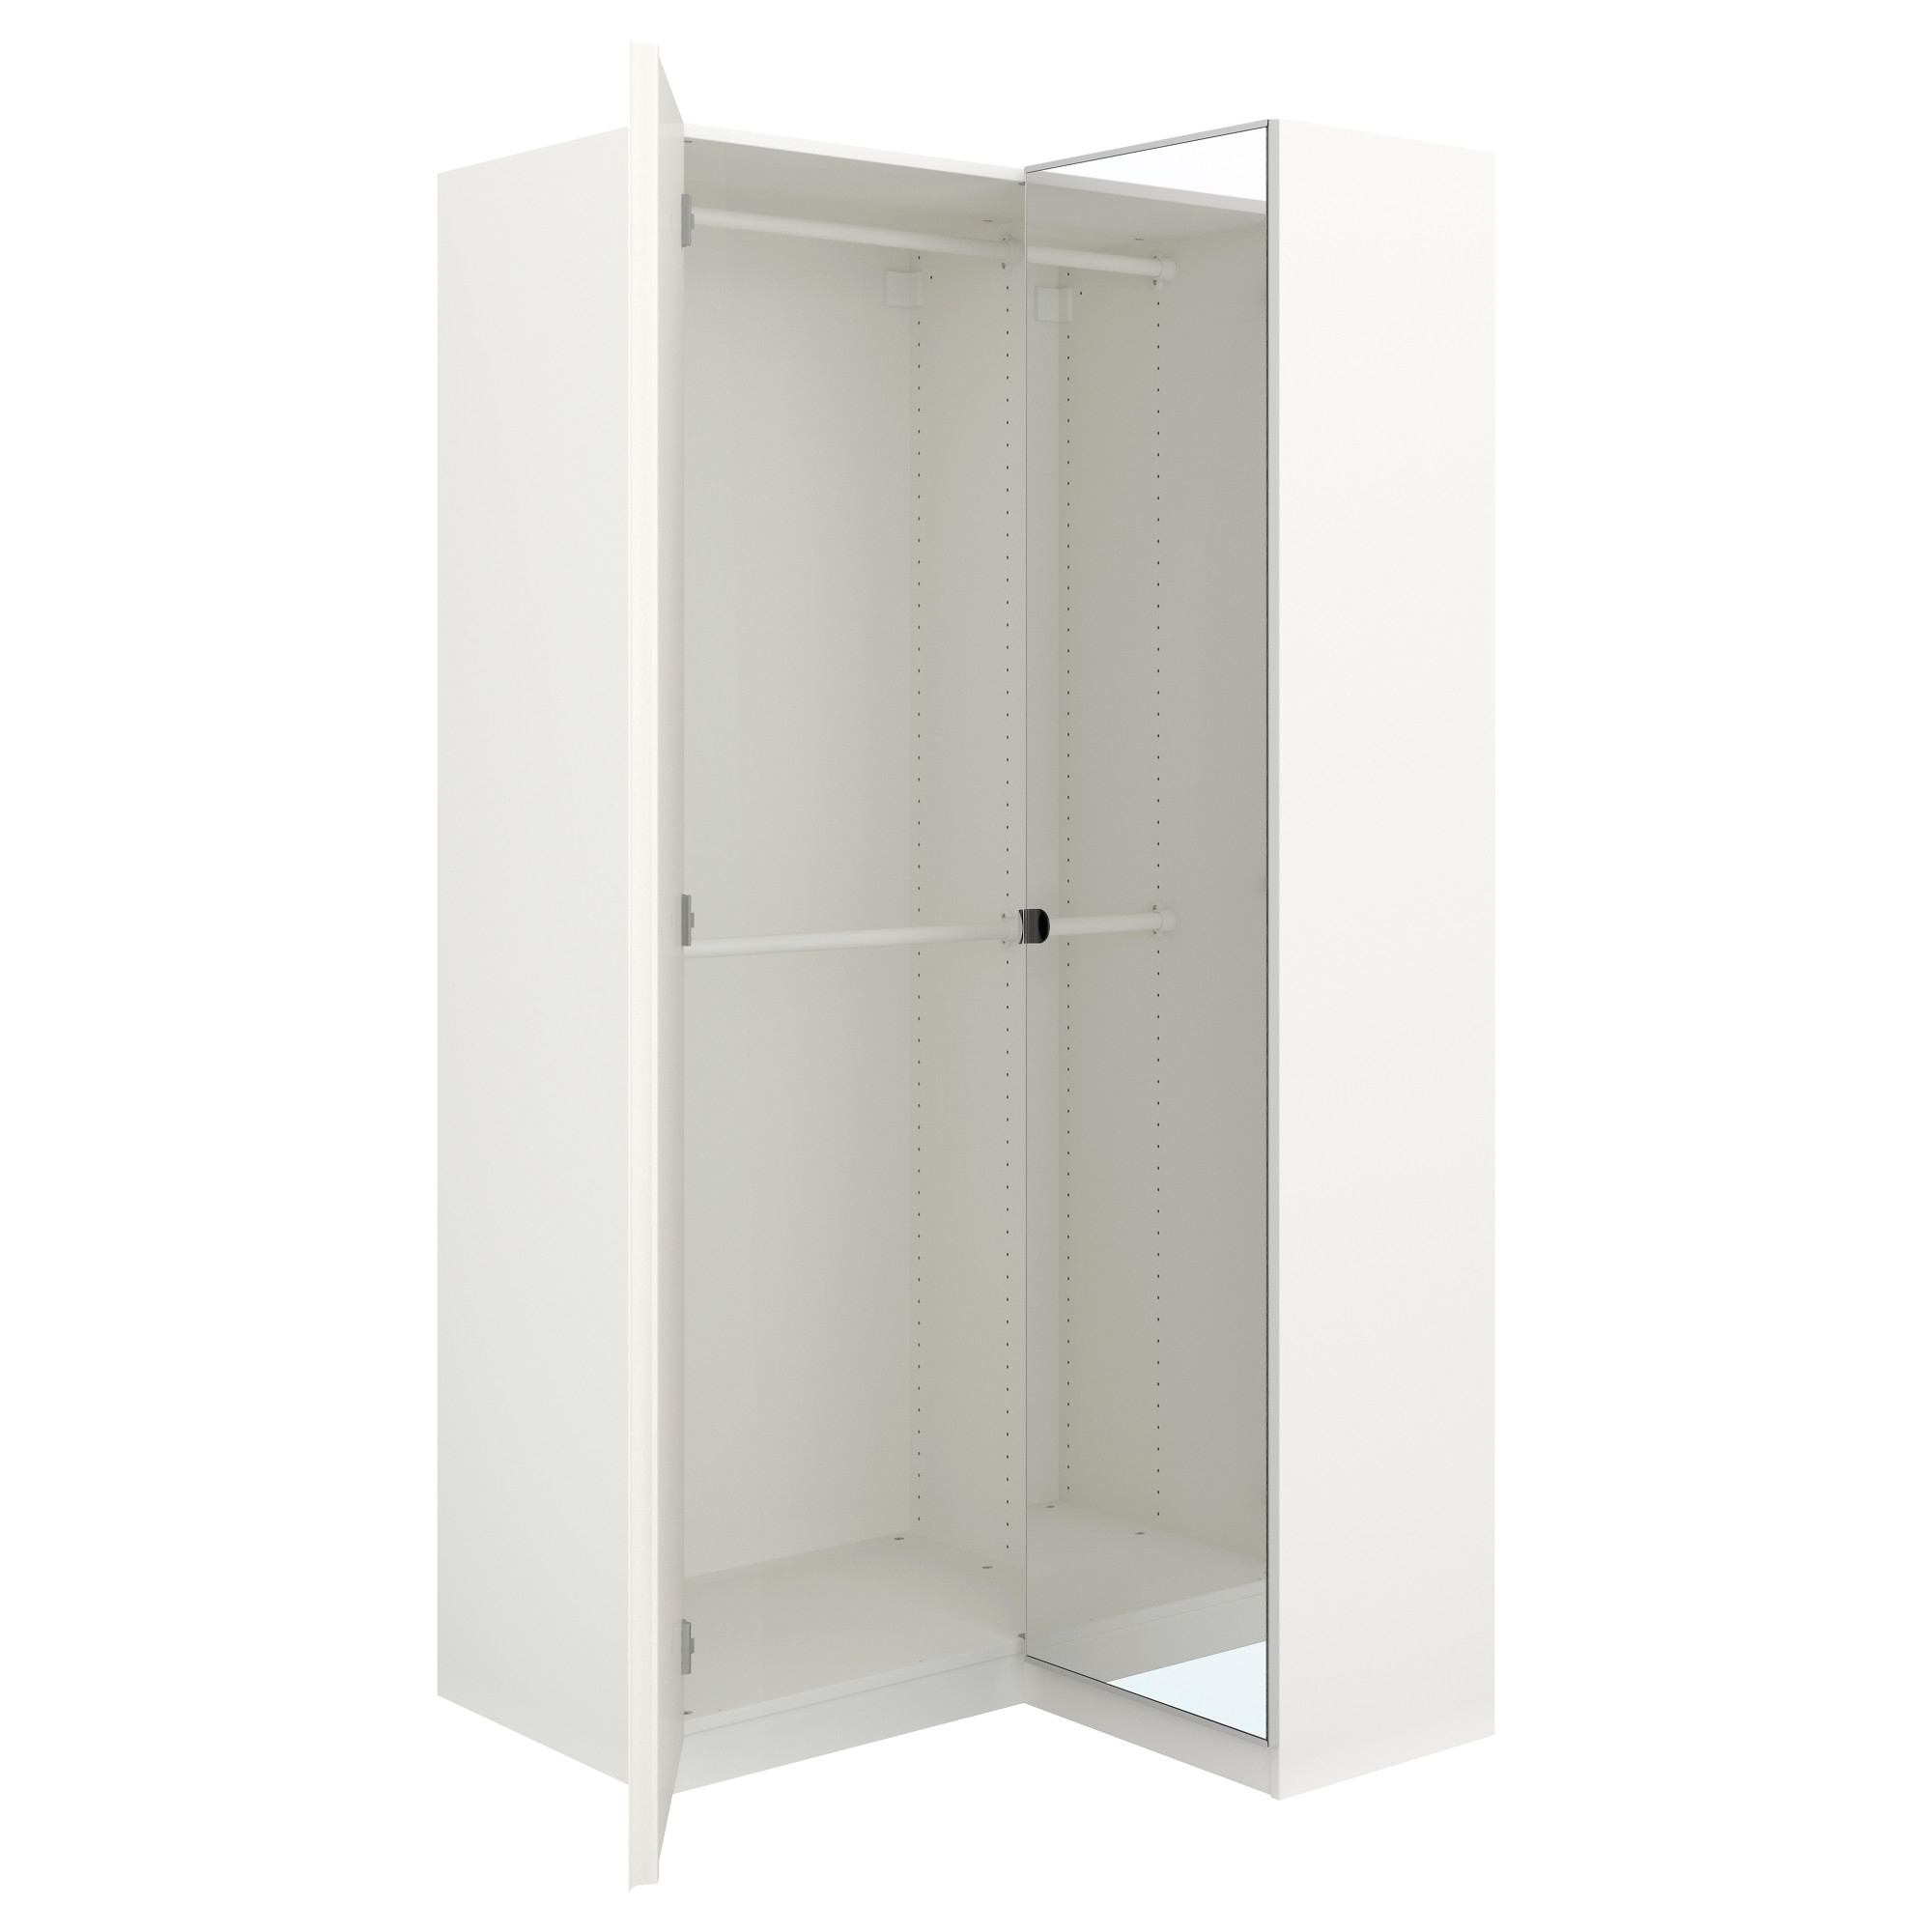 Fashionable Pax Corner Wardrobe White/fardal Vikedal 111/88X201 Cm – Ikea In Corner Mirror Wardrobes (View 5 of 15)